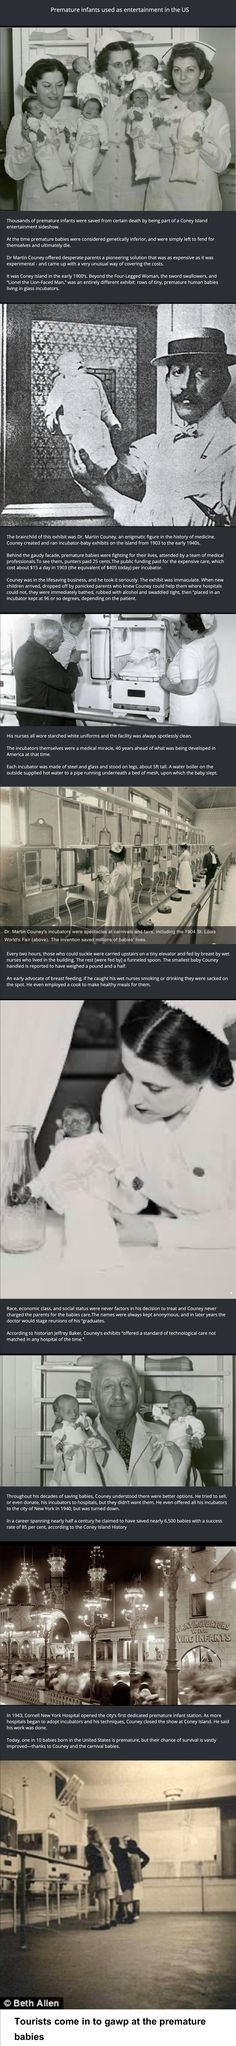 History of premature babies History Memes, History Facts, The More You Know, Good To Know, Faith In Humanity Restored, Mystery Of History, Wtf Fun Facts, Interesting History, My Tumblr